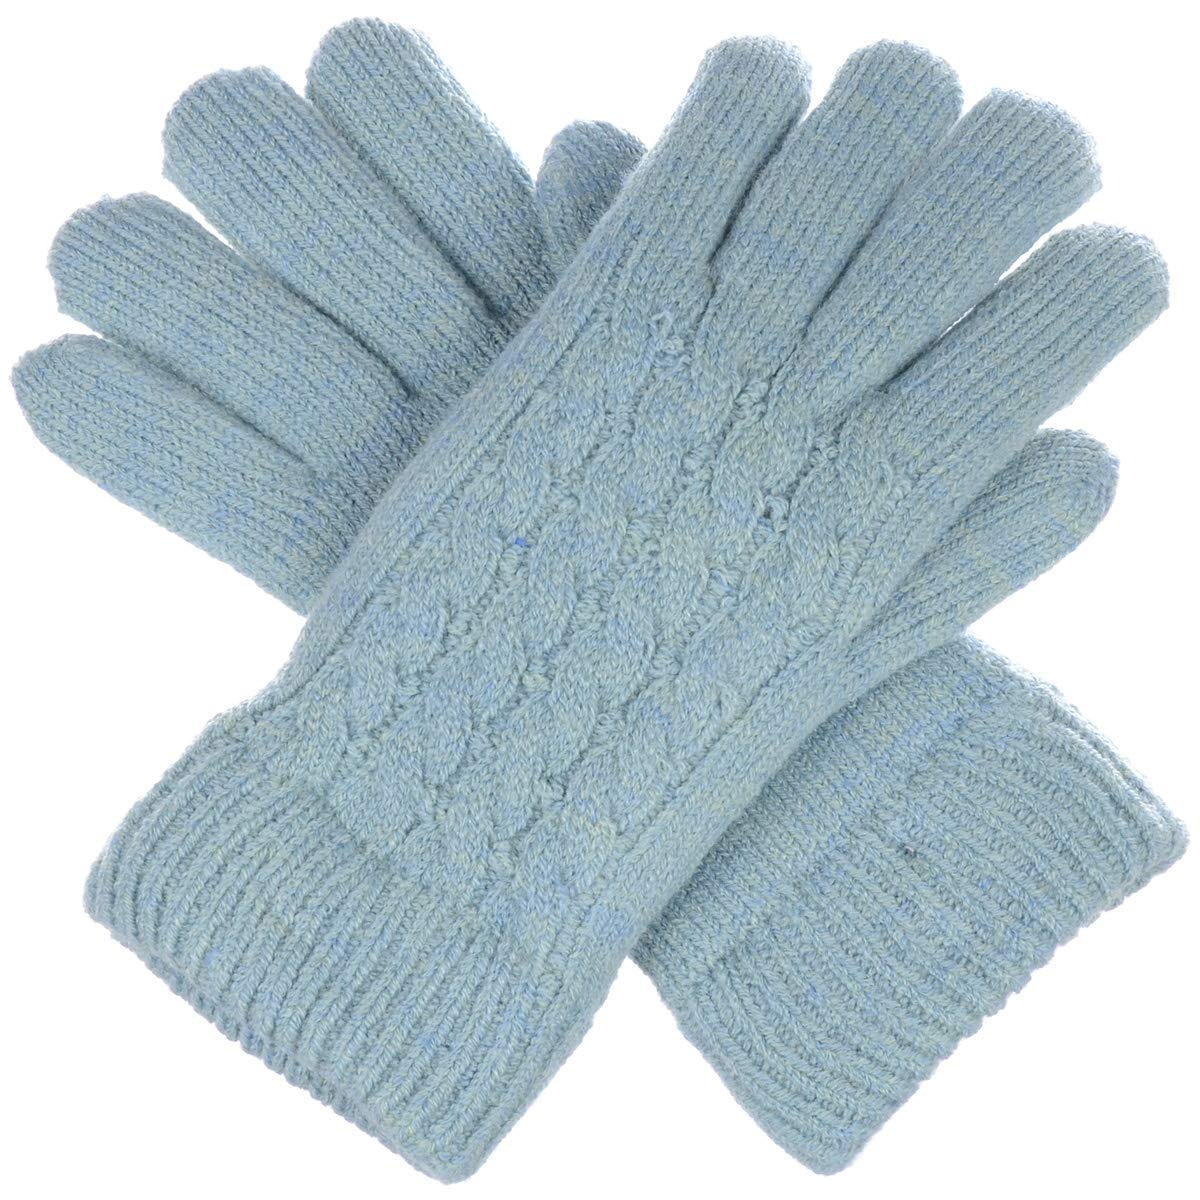 BYOS Women Winter Classic Cable Ultra Warm Soft Plush Faux Fur Fleece Lined Knit Gloves (Pastel Blue Cable)